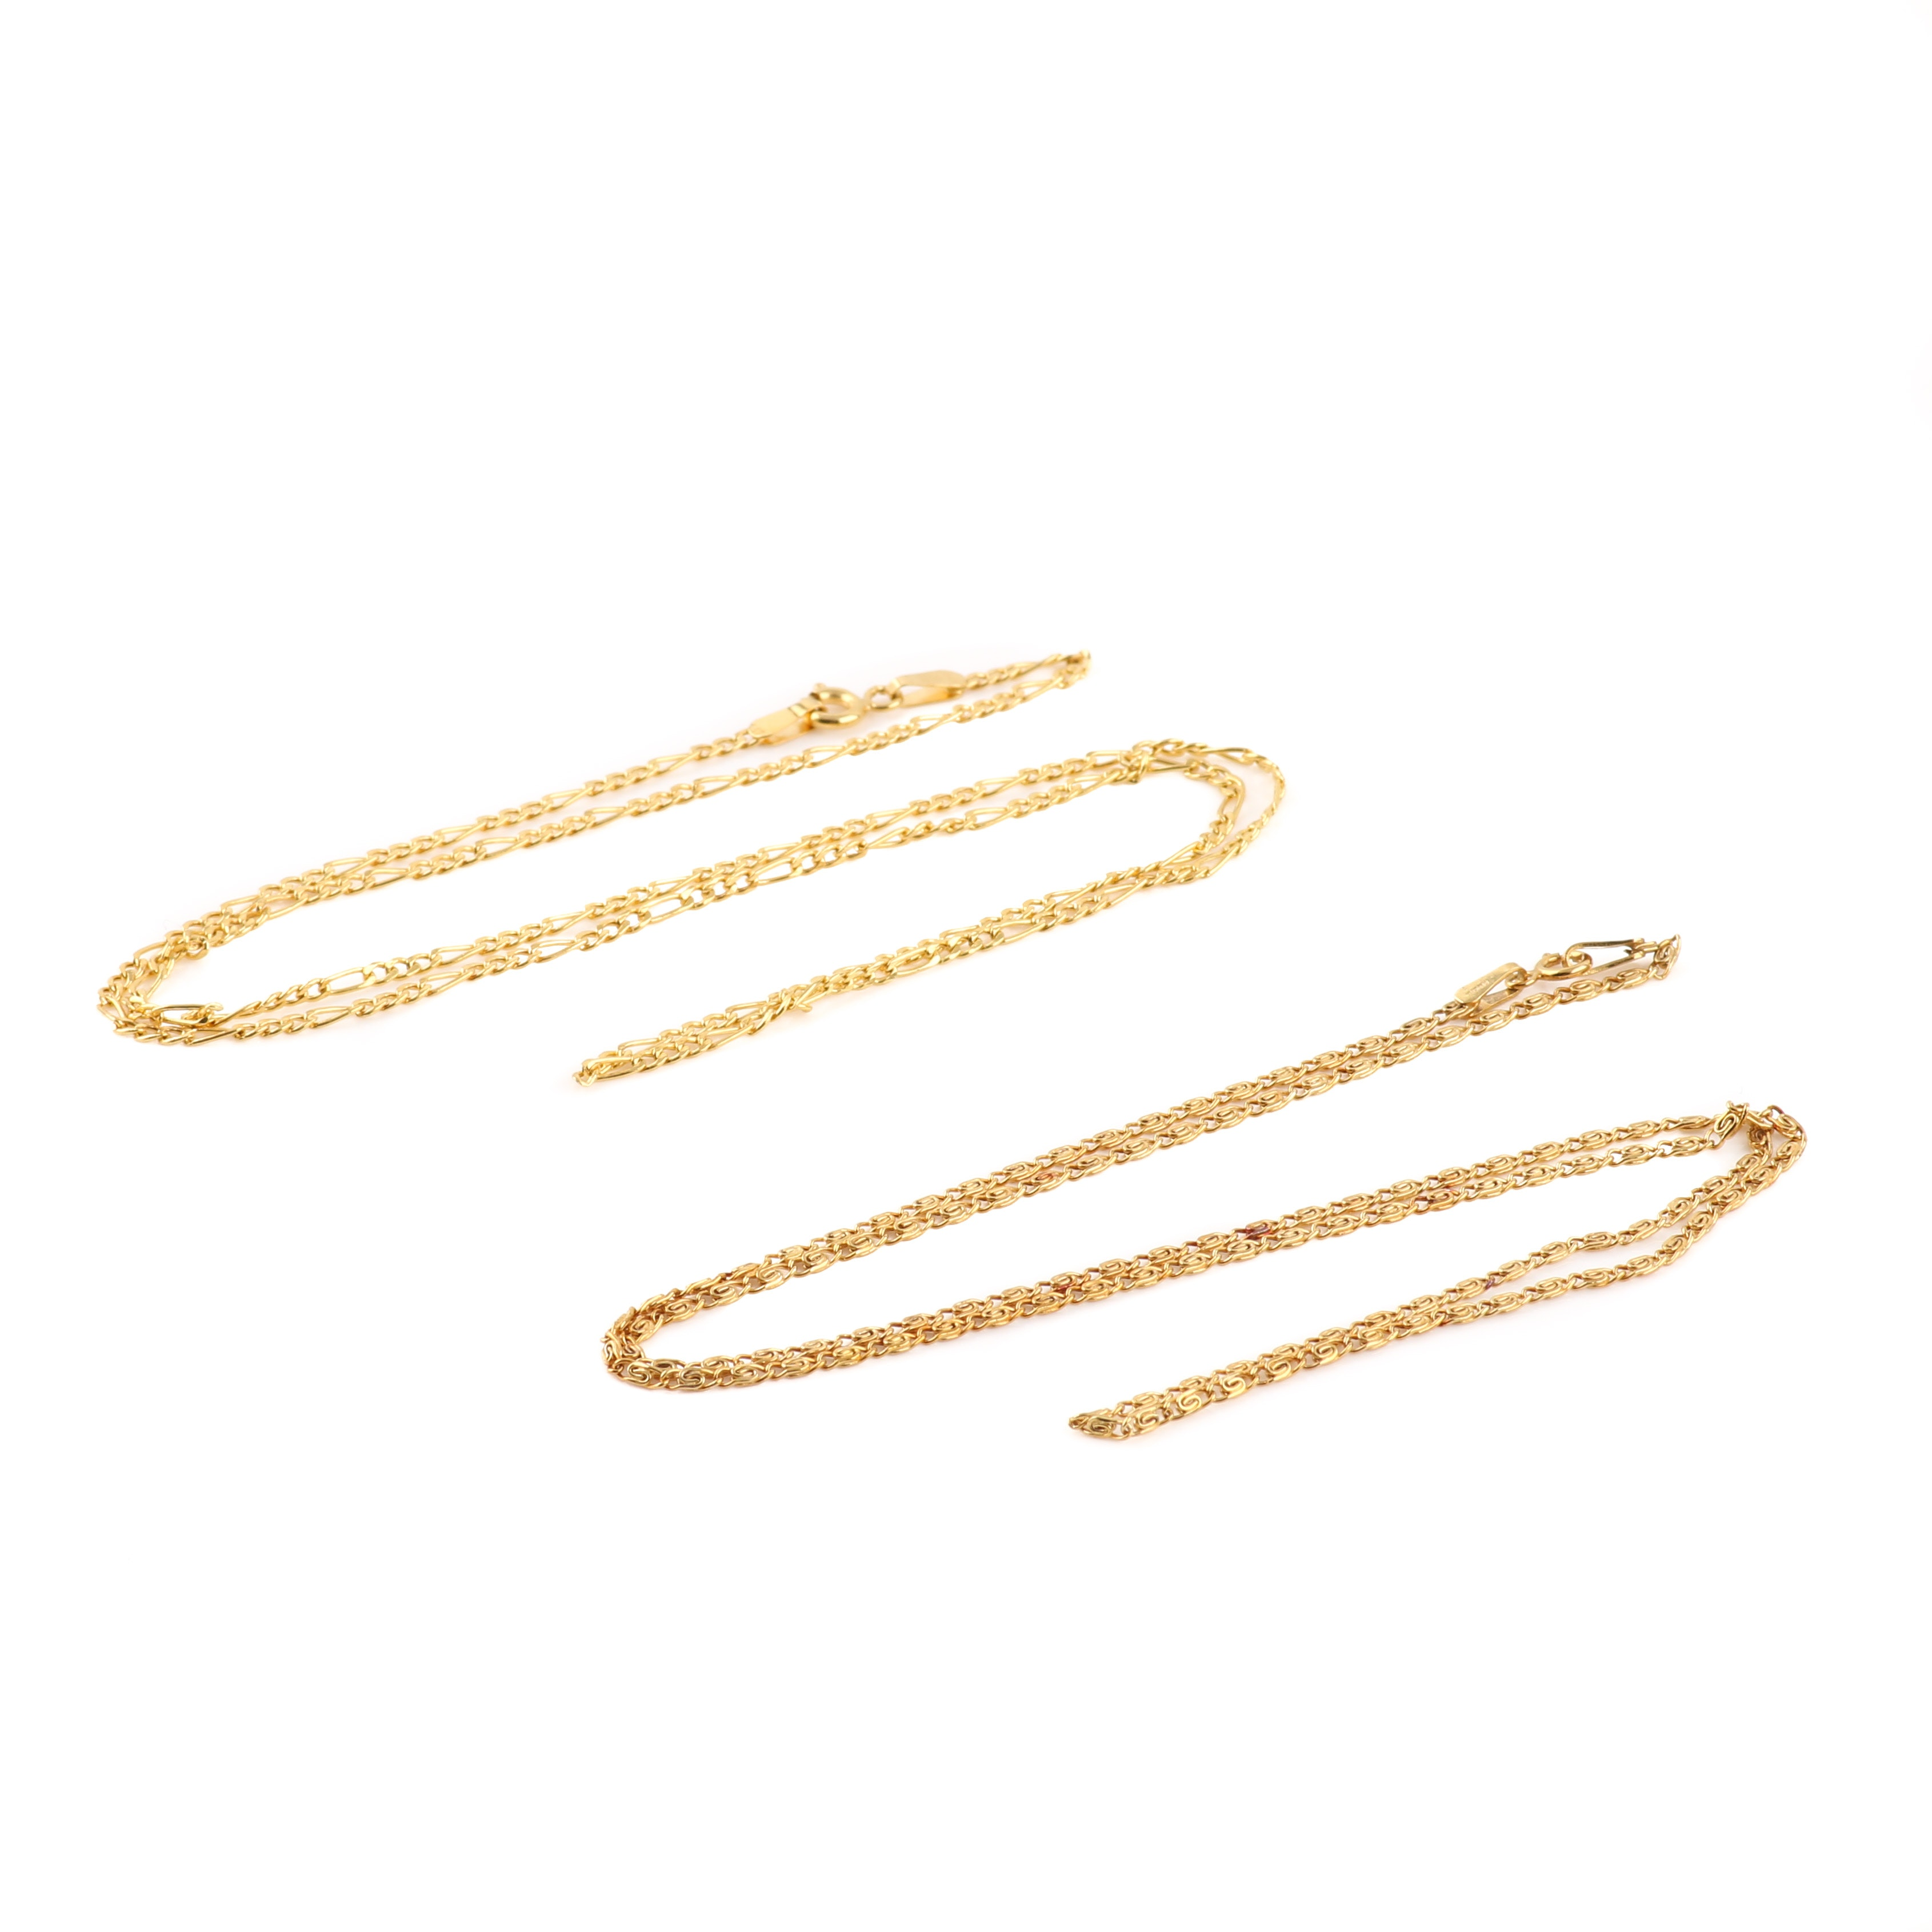 10K Yellow Gold Chain Necklaces